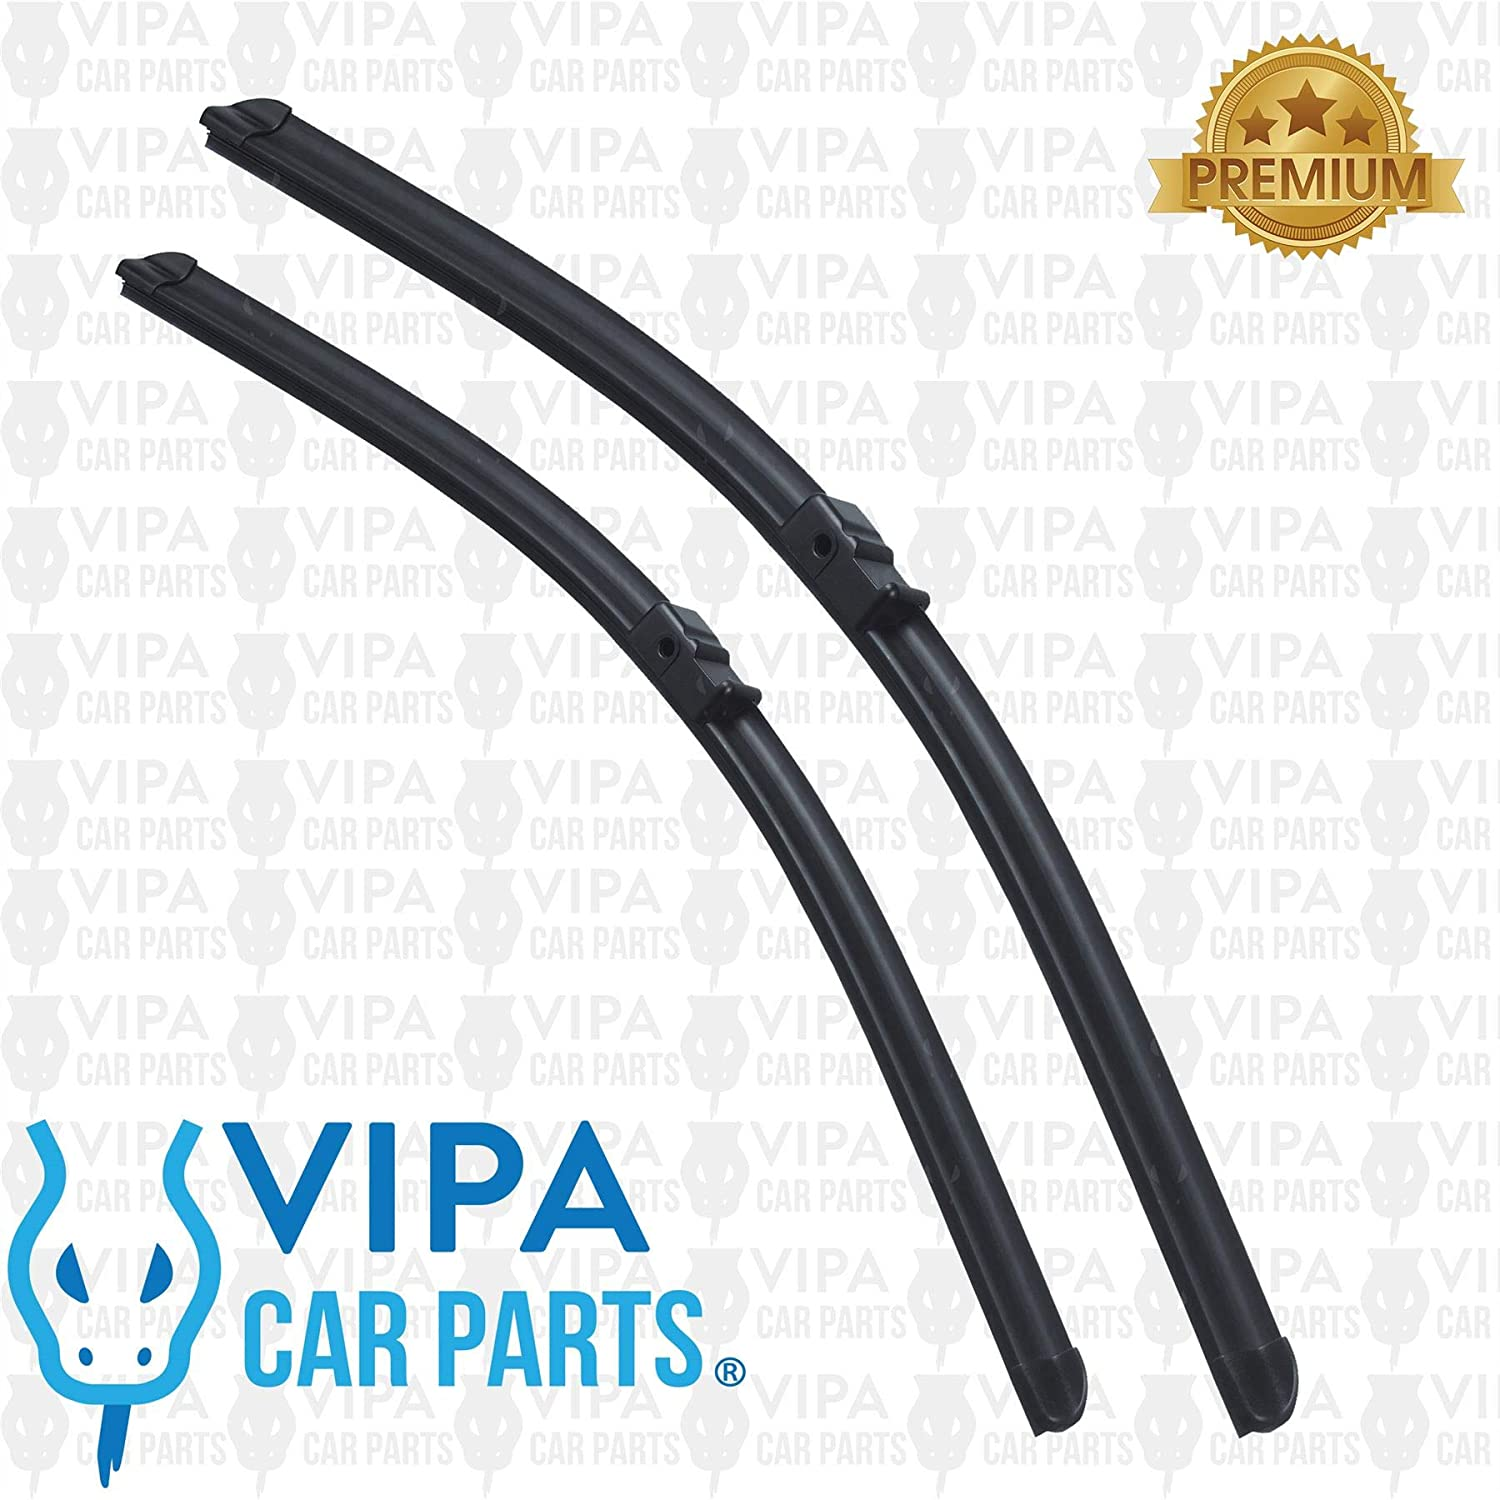 207 Hatchback Feb 2006 Onwards Windscreen Wiper Blade Kit 2 x Blades